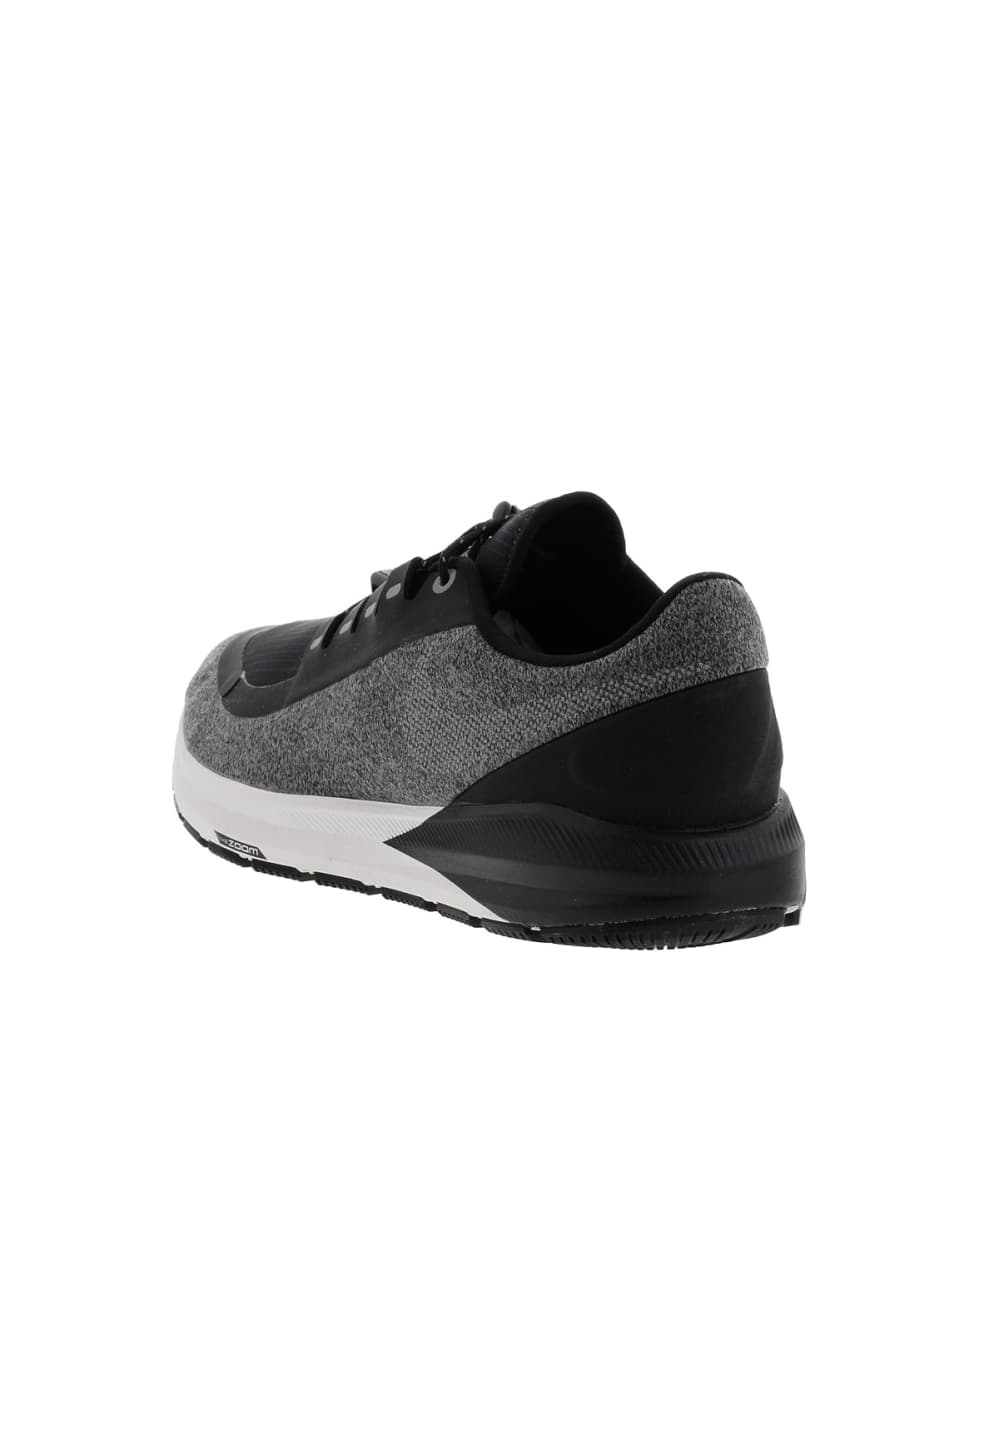 finest selection 0fcba 8b0a3 Next. Nike. Air Zoom Structure 22 Rn Shield - Running ...